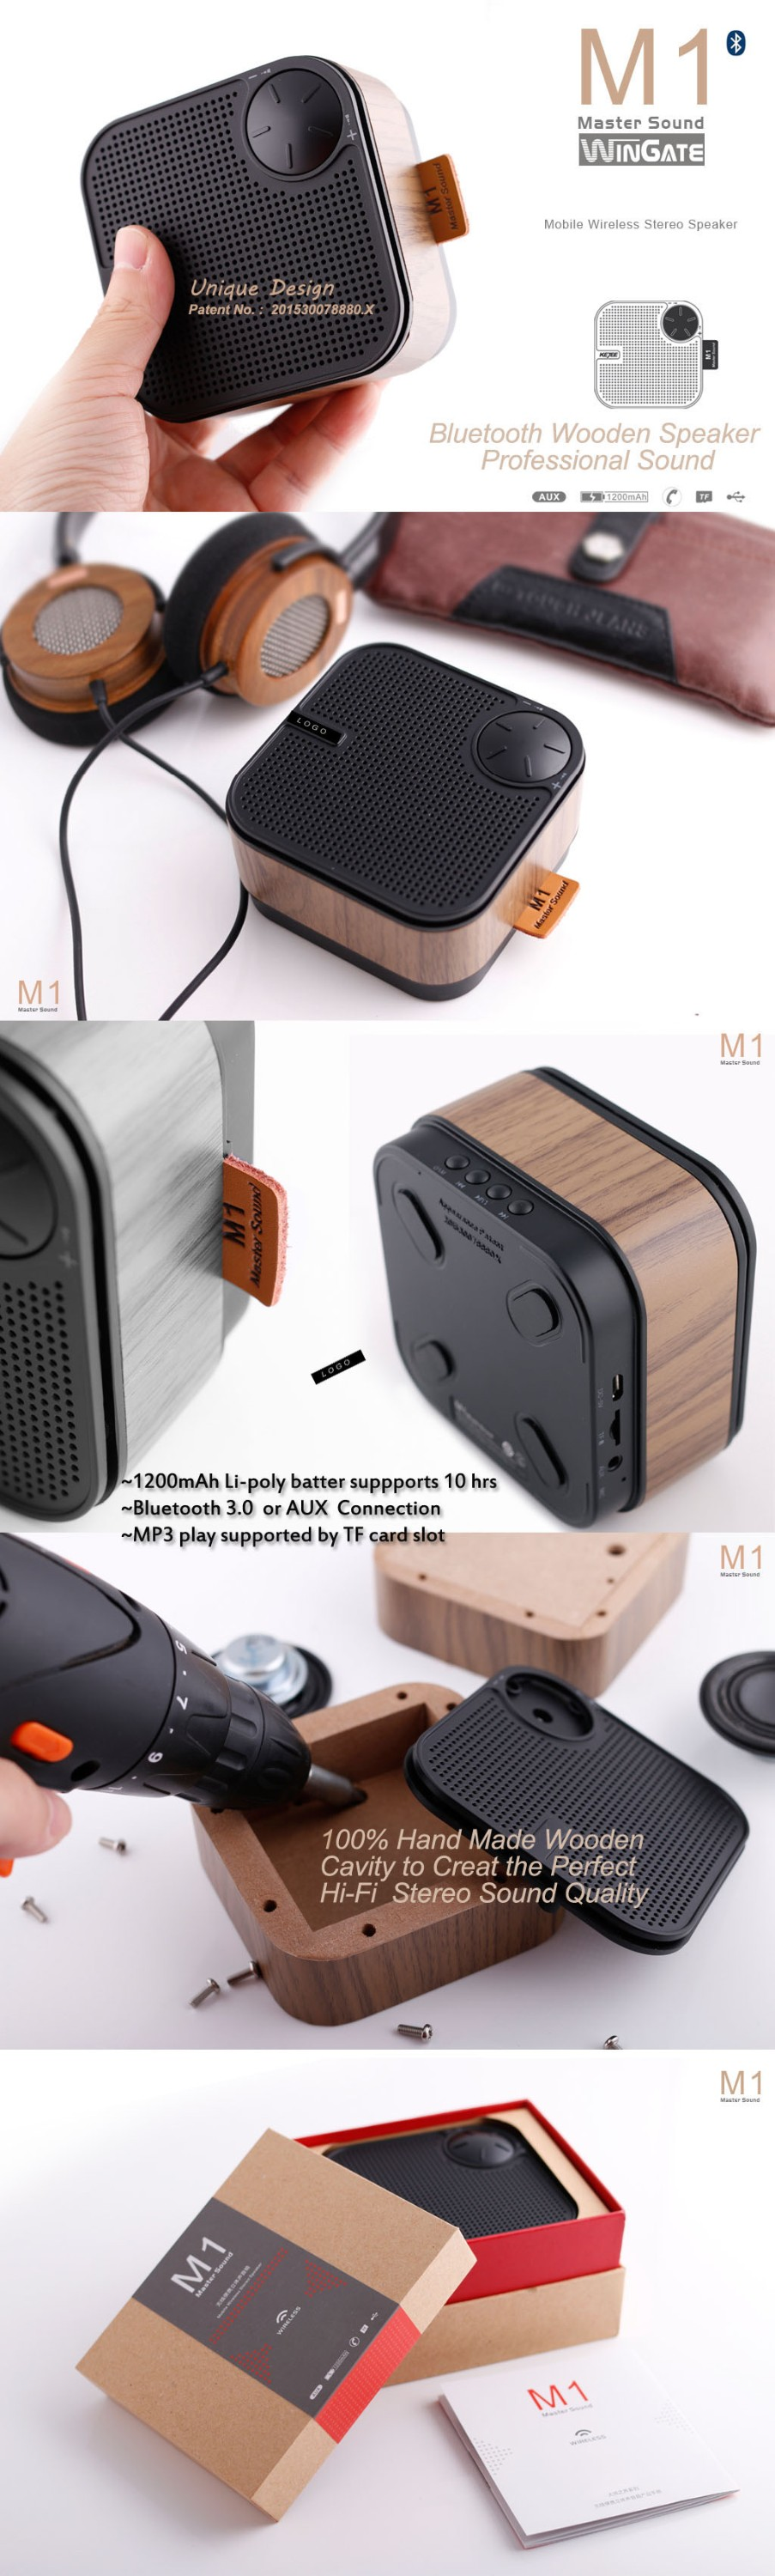 Personalized Portable Hand Made wooden HIFI bluetooth Speaker